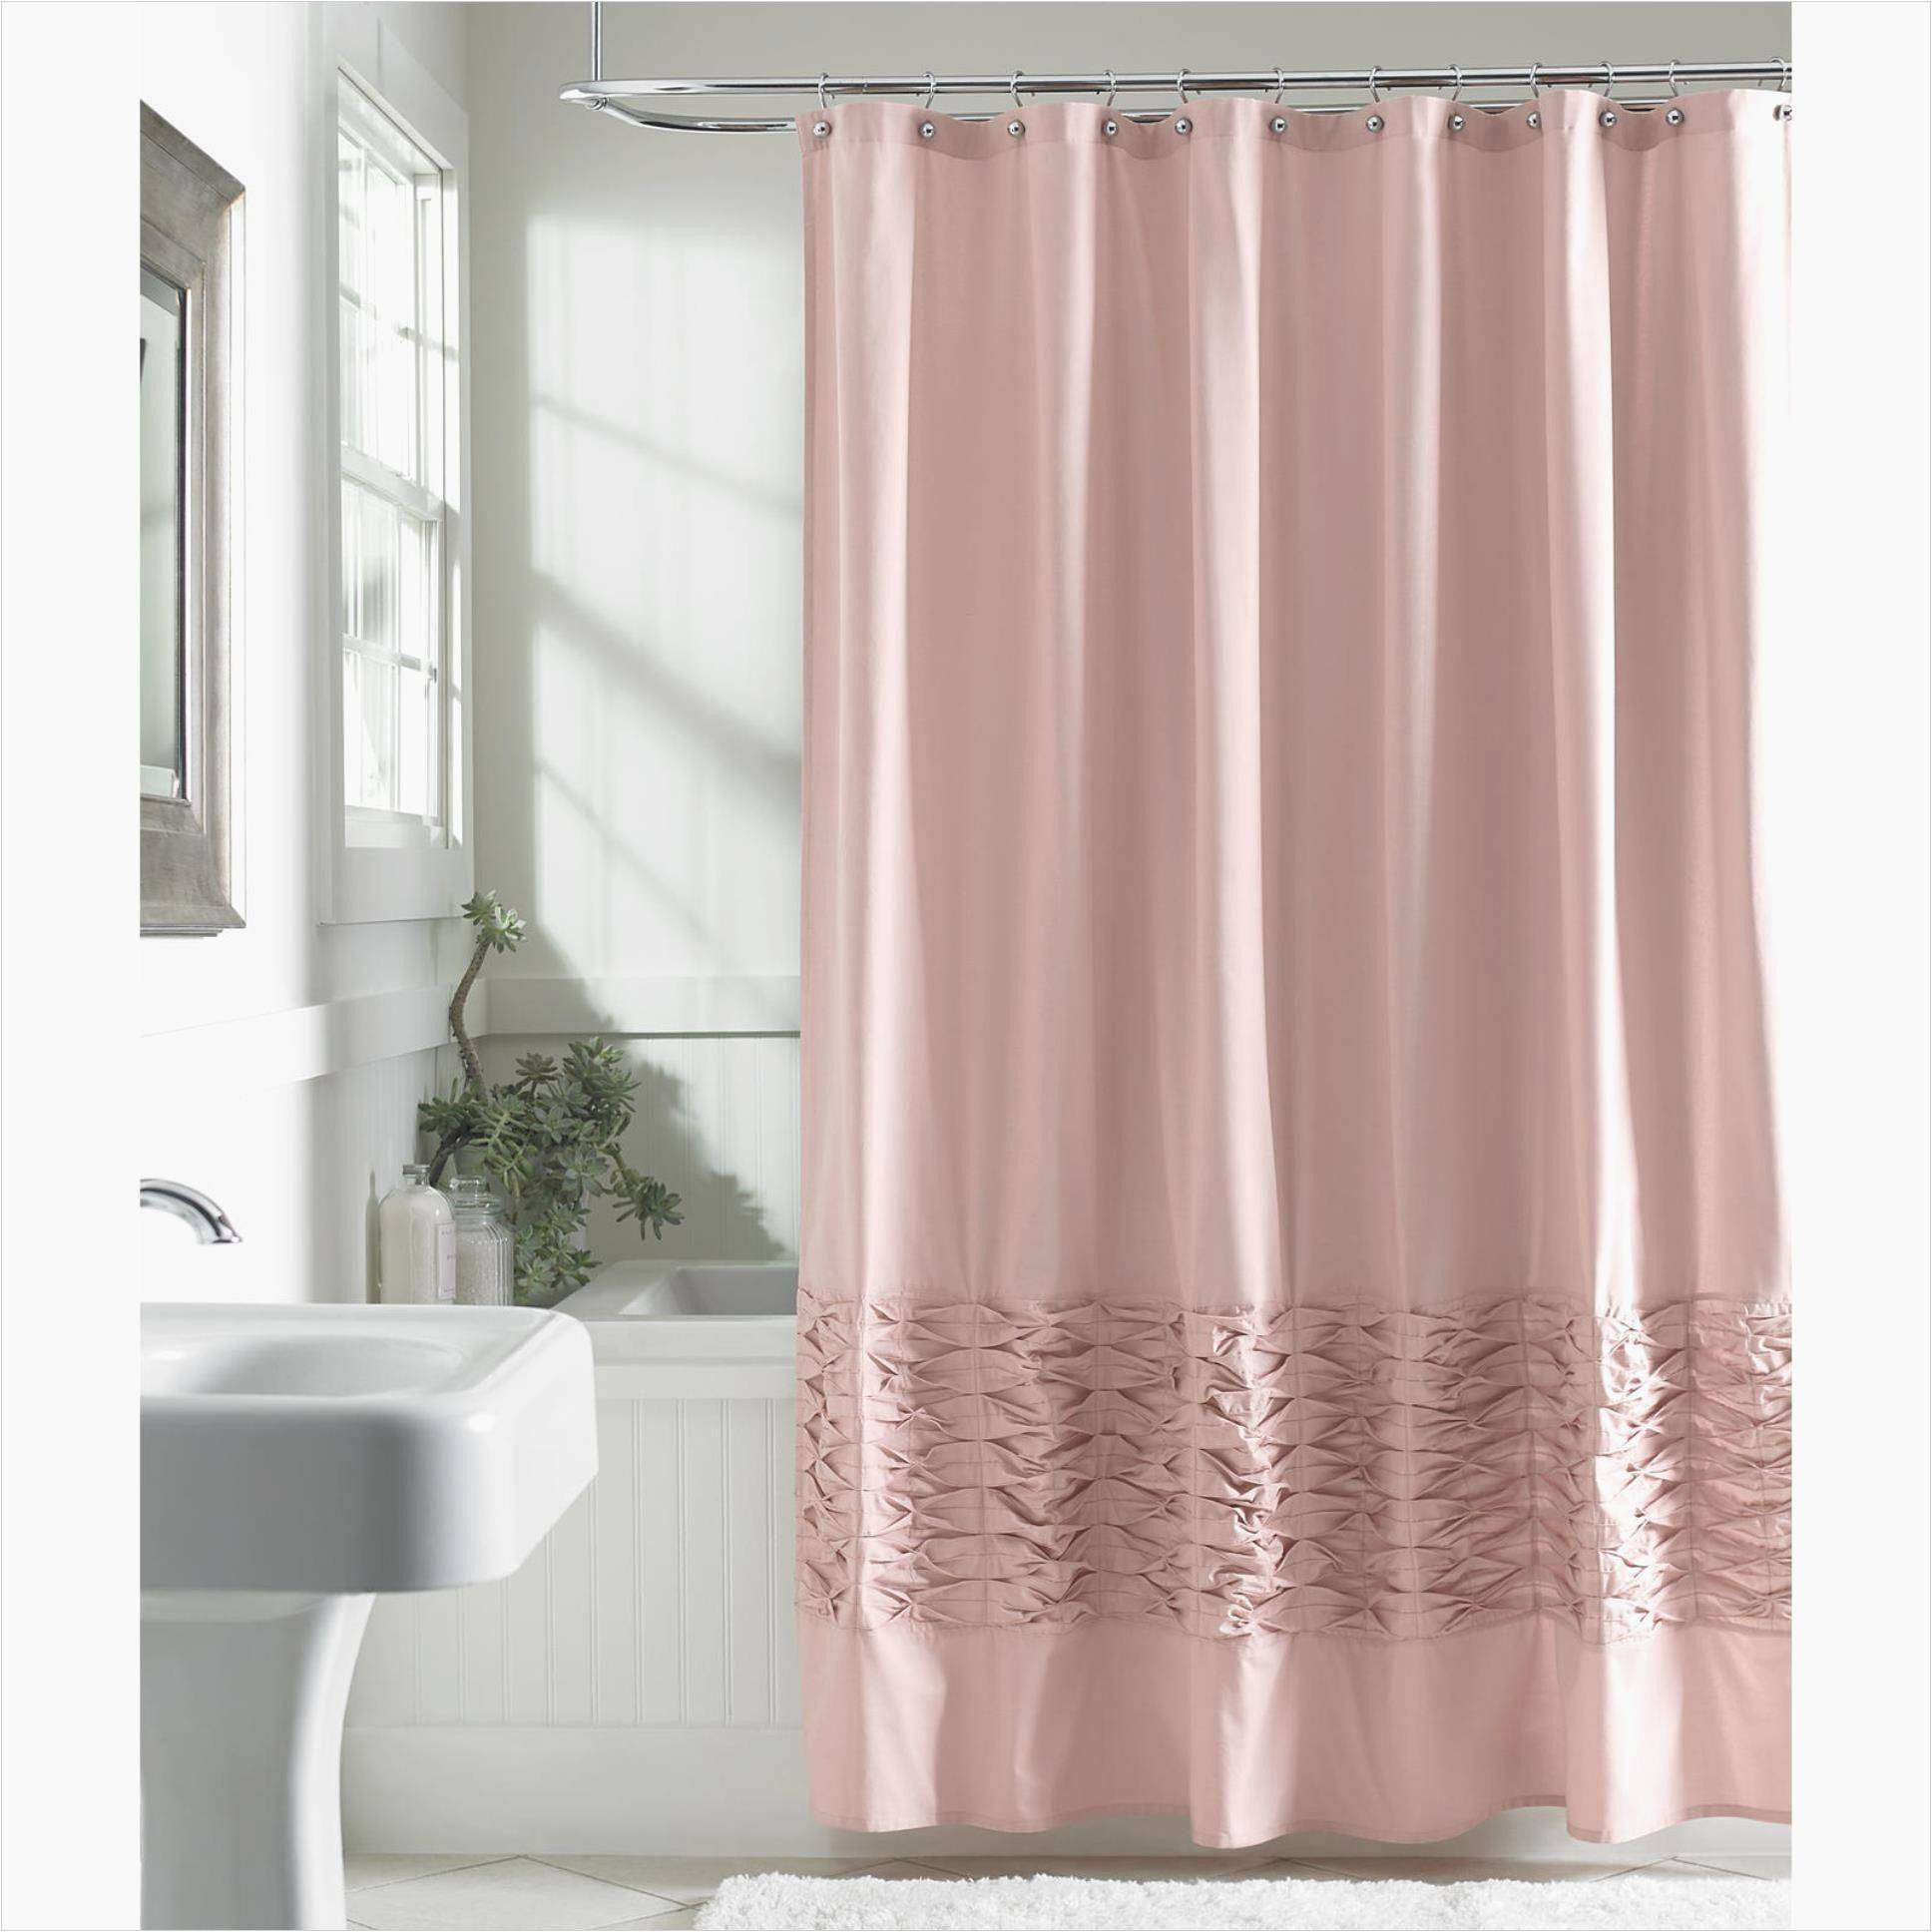 Curtains and Drapes at Lowes A Blackout Curtains Lowes 37 Fresh Grey Curtain Panels the 61938